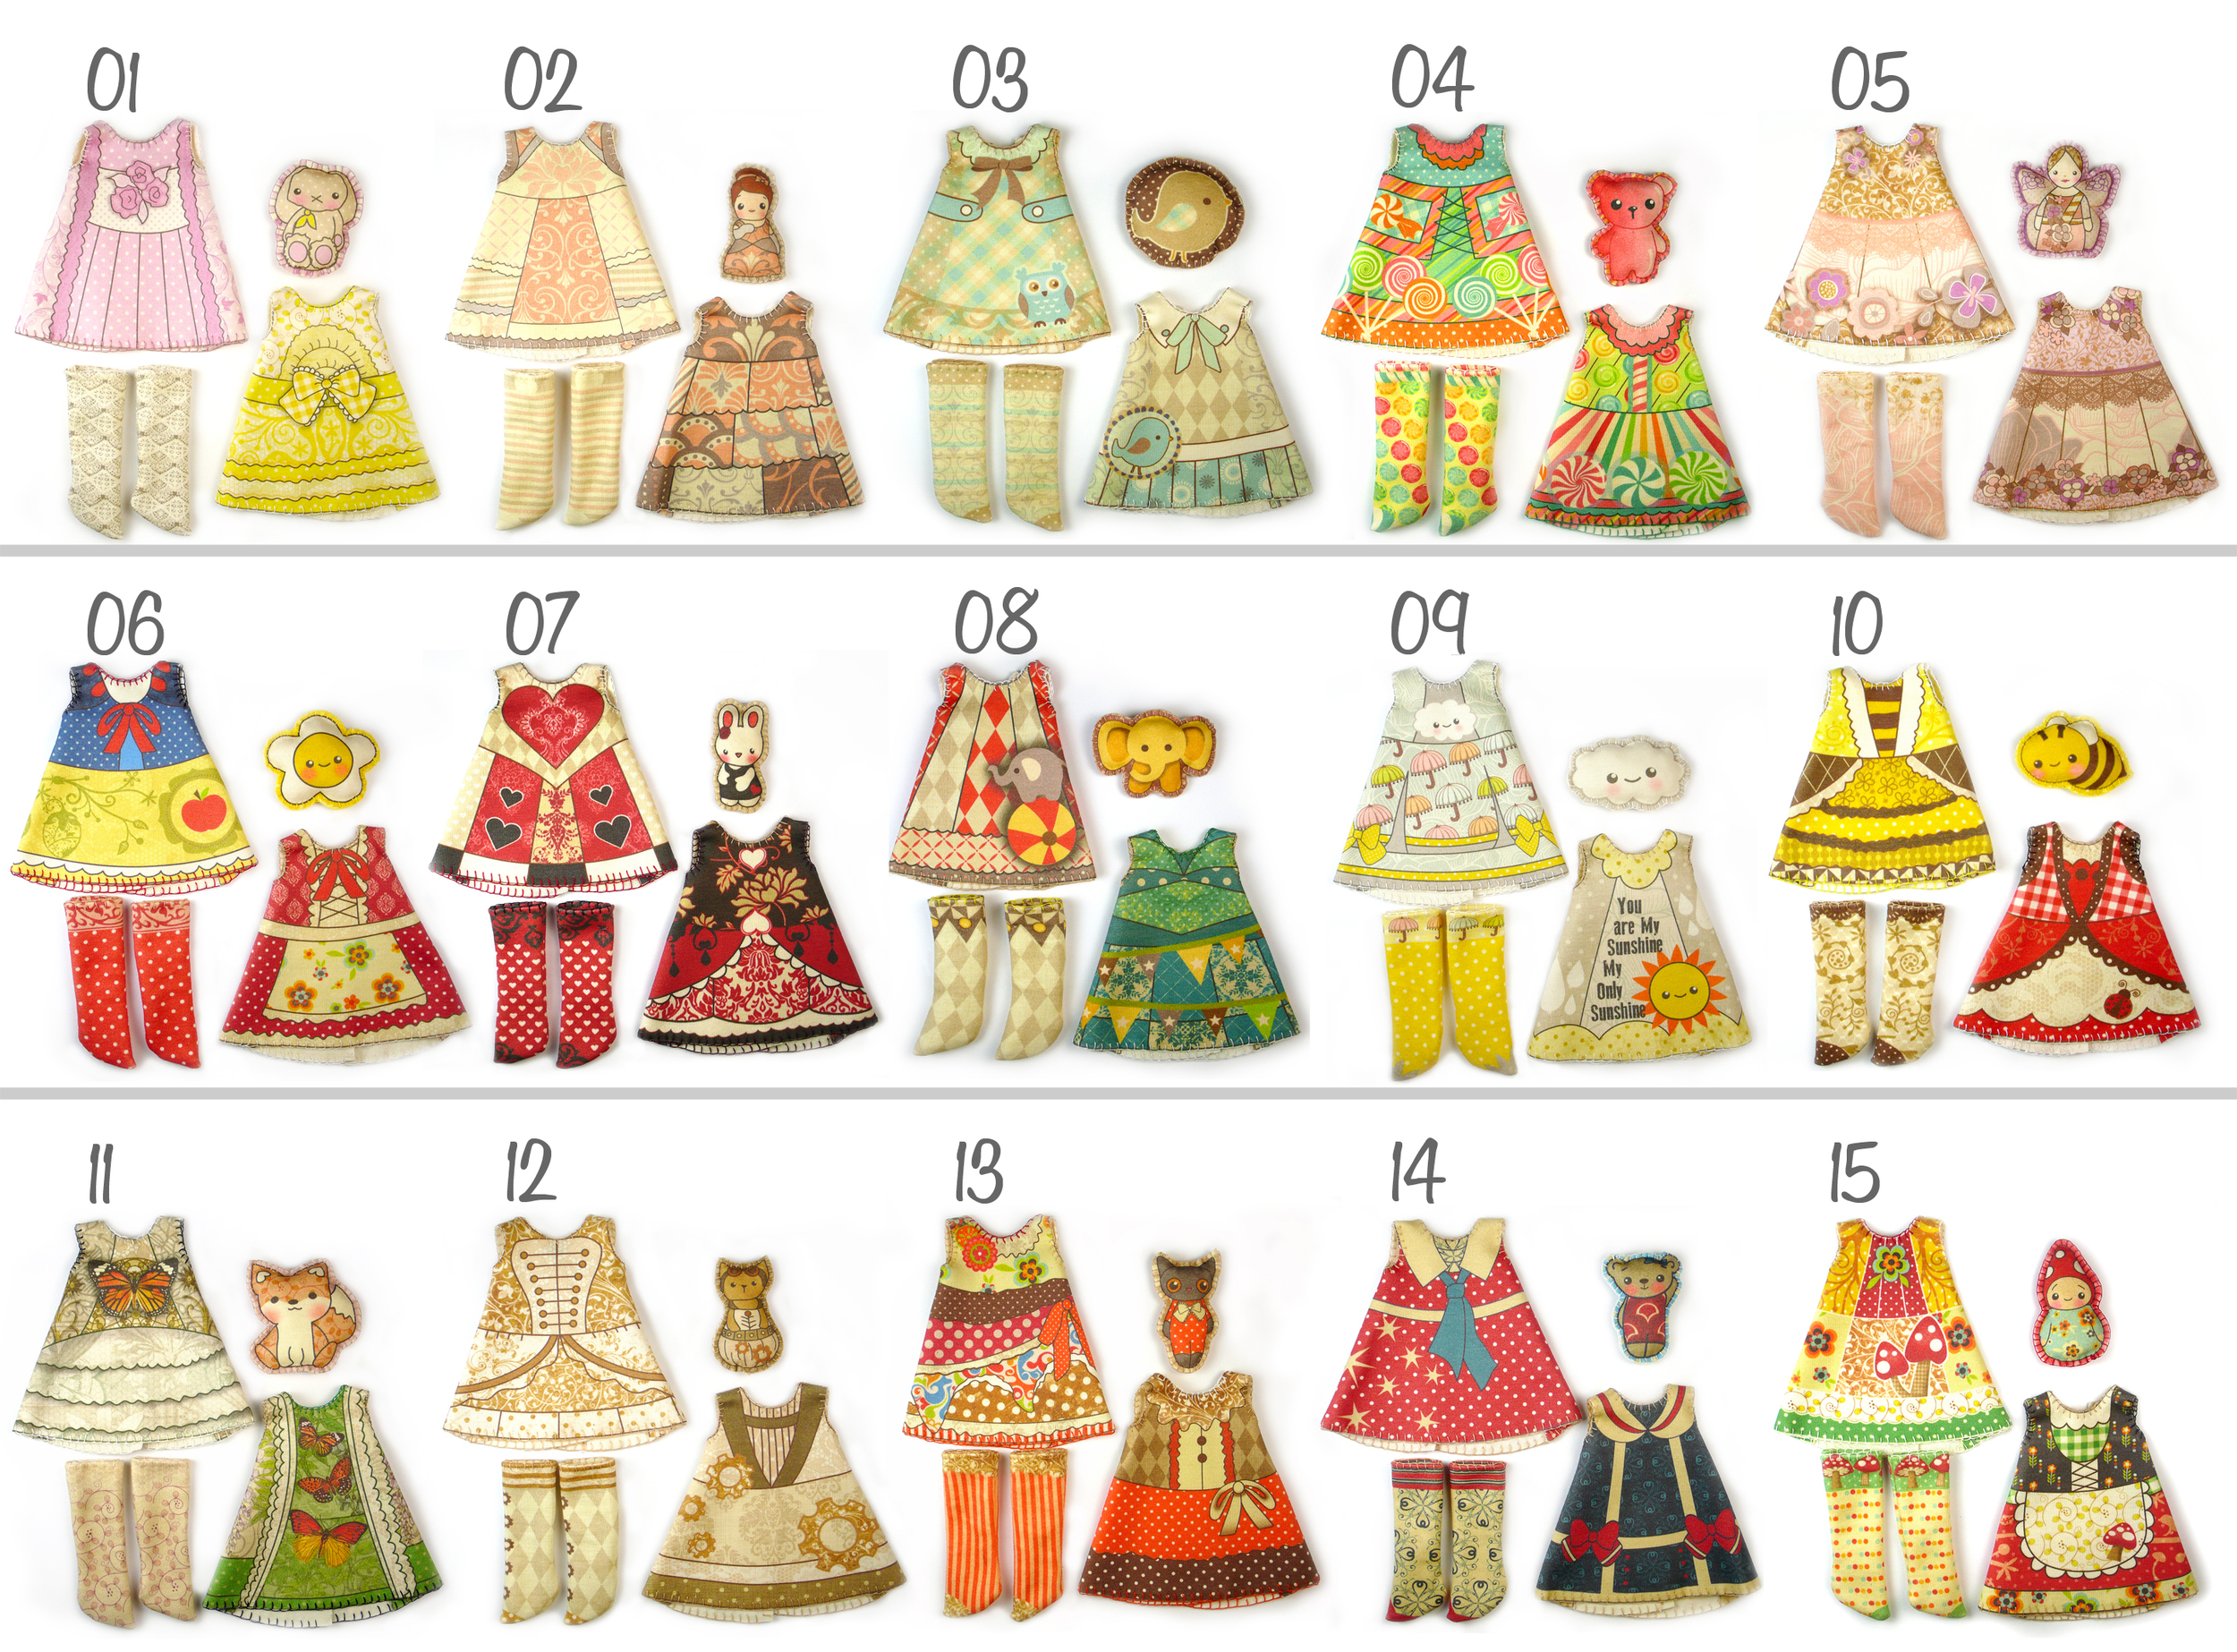 Tiny doll clothing kits available in my  Doll Project  shop.